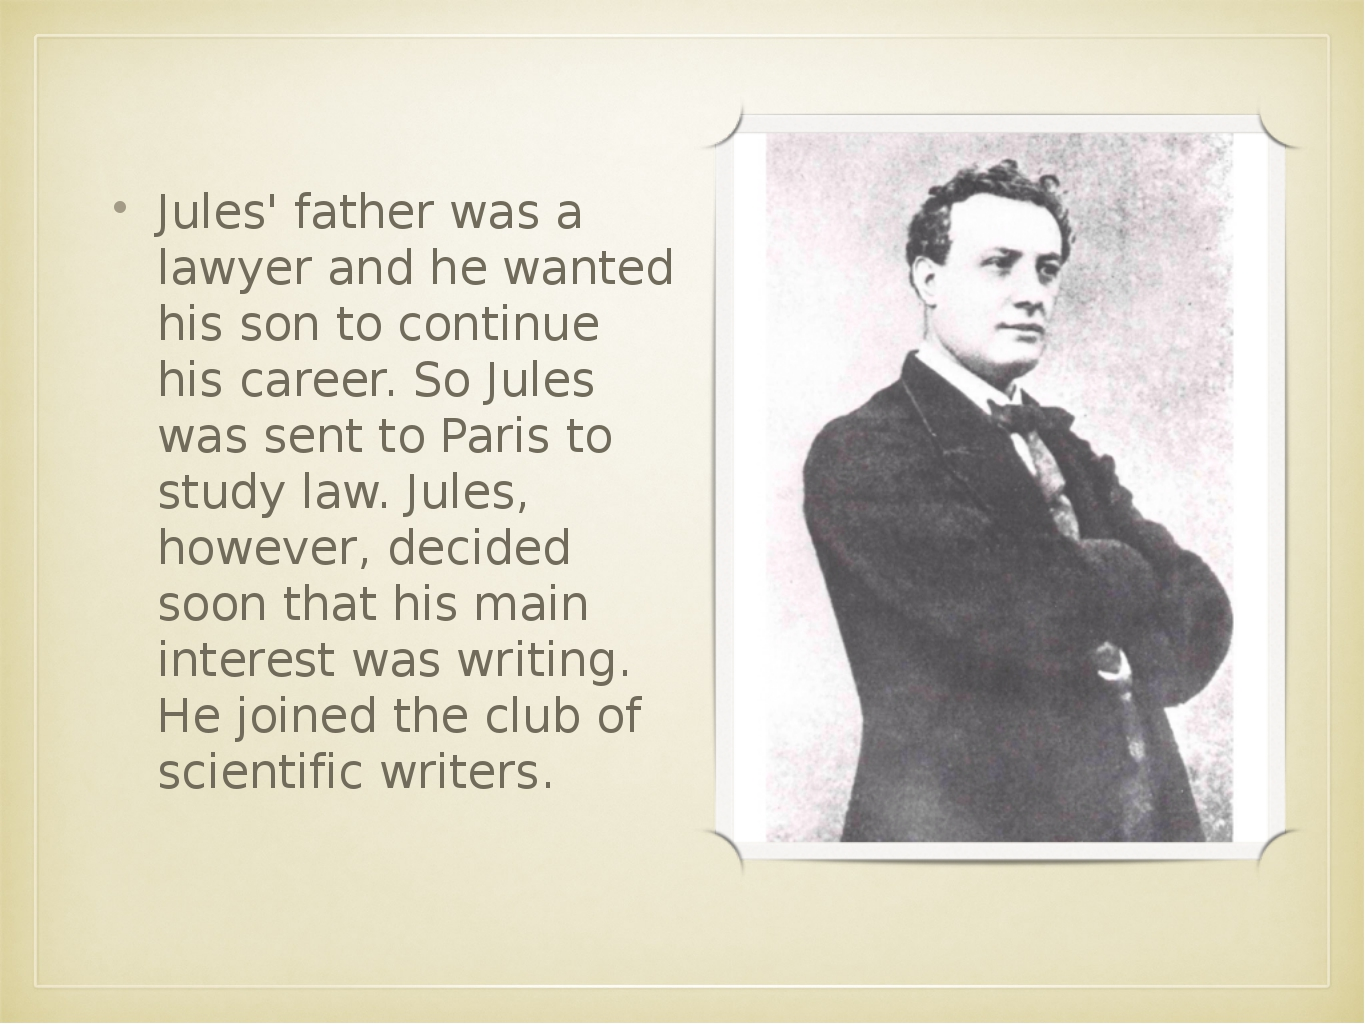 Jules' father was a lawyer and he wanted his son to continue his career. So J...